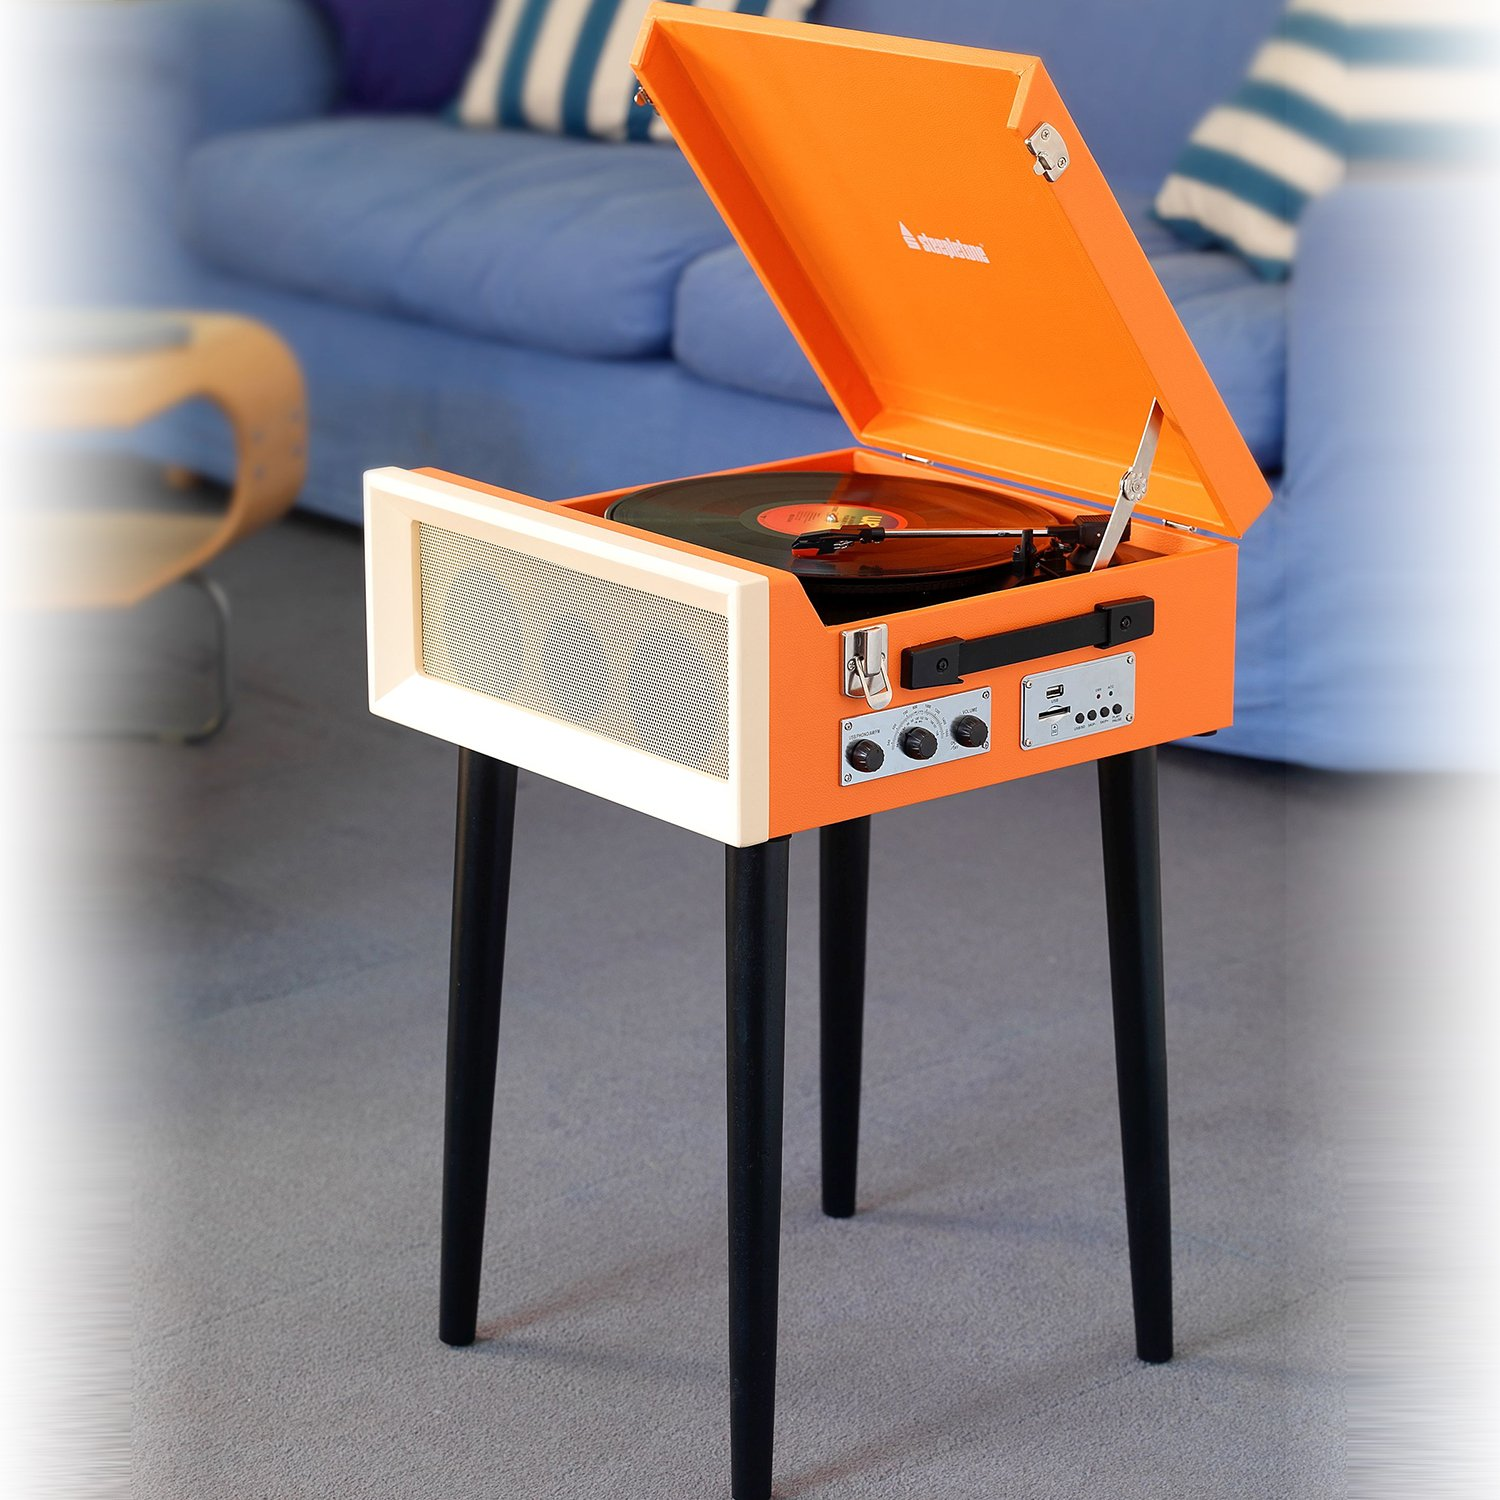 Steepletone SRP1R – 16 Record Player 3 – Speed 1970's Style on Legs with MP3 Playback (Orange)